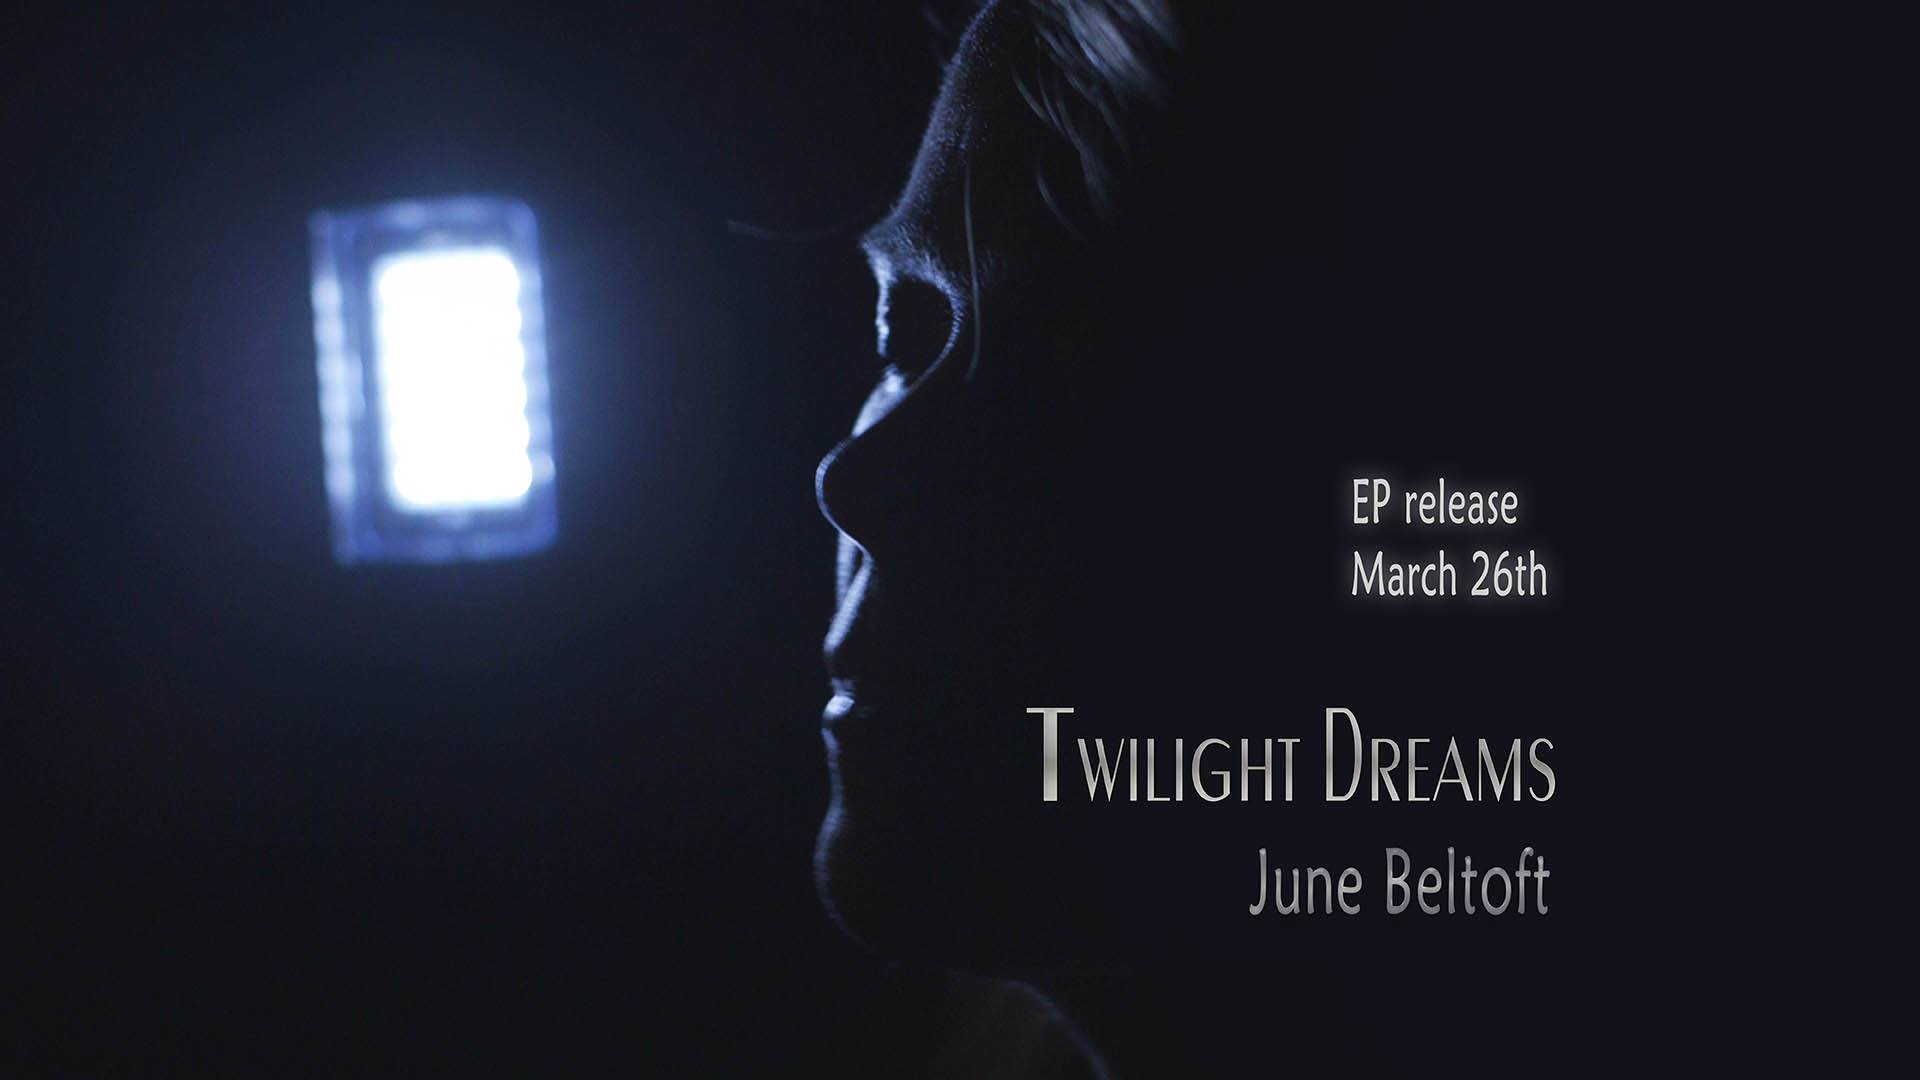 Twilight Dreams EP by June Beltoft - Release soon on March 26th, 2021